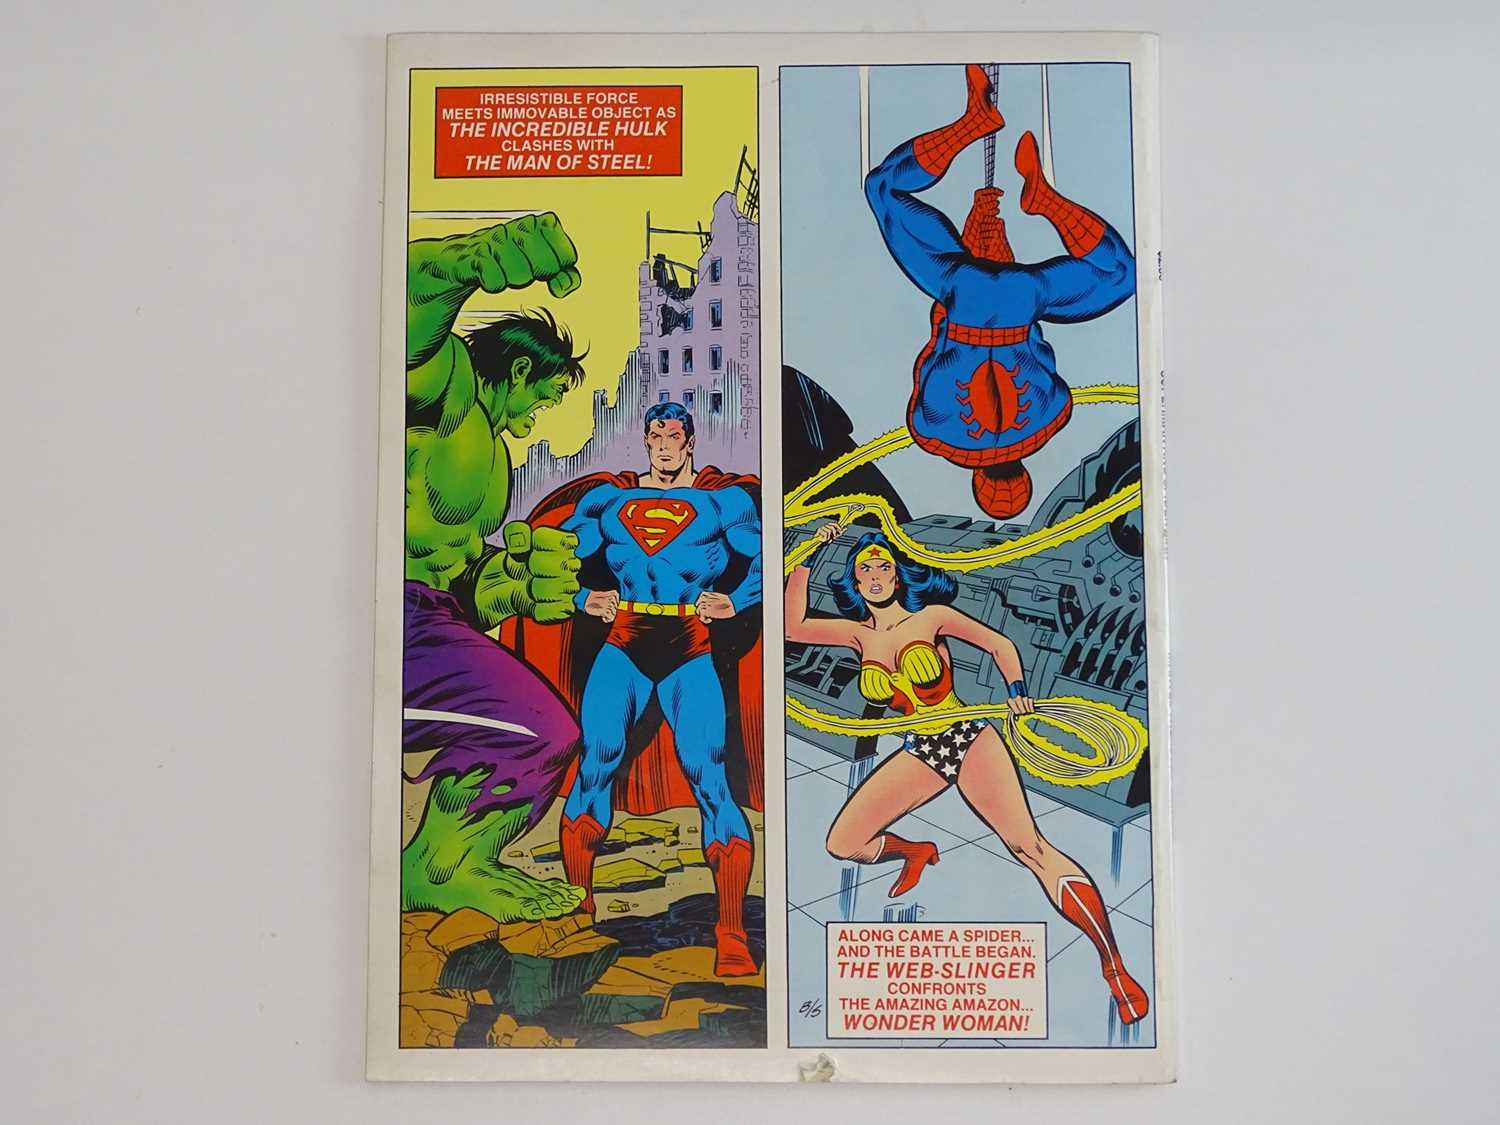 SUPERMAN AND SPIDER-MAN: COLLECTORS EDITION (1981 - MARVEL/DC) Special edition over-sized issue - Image 3 of 9